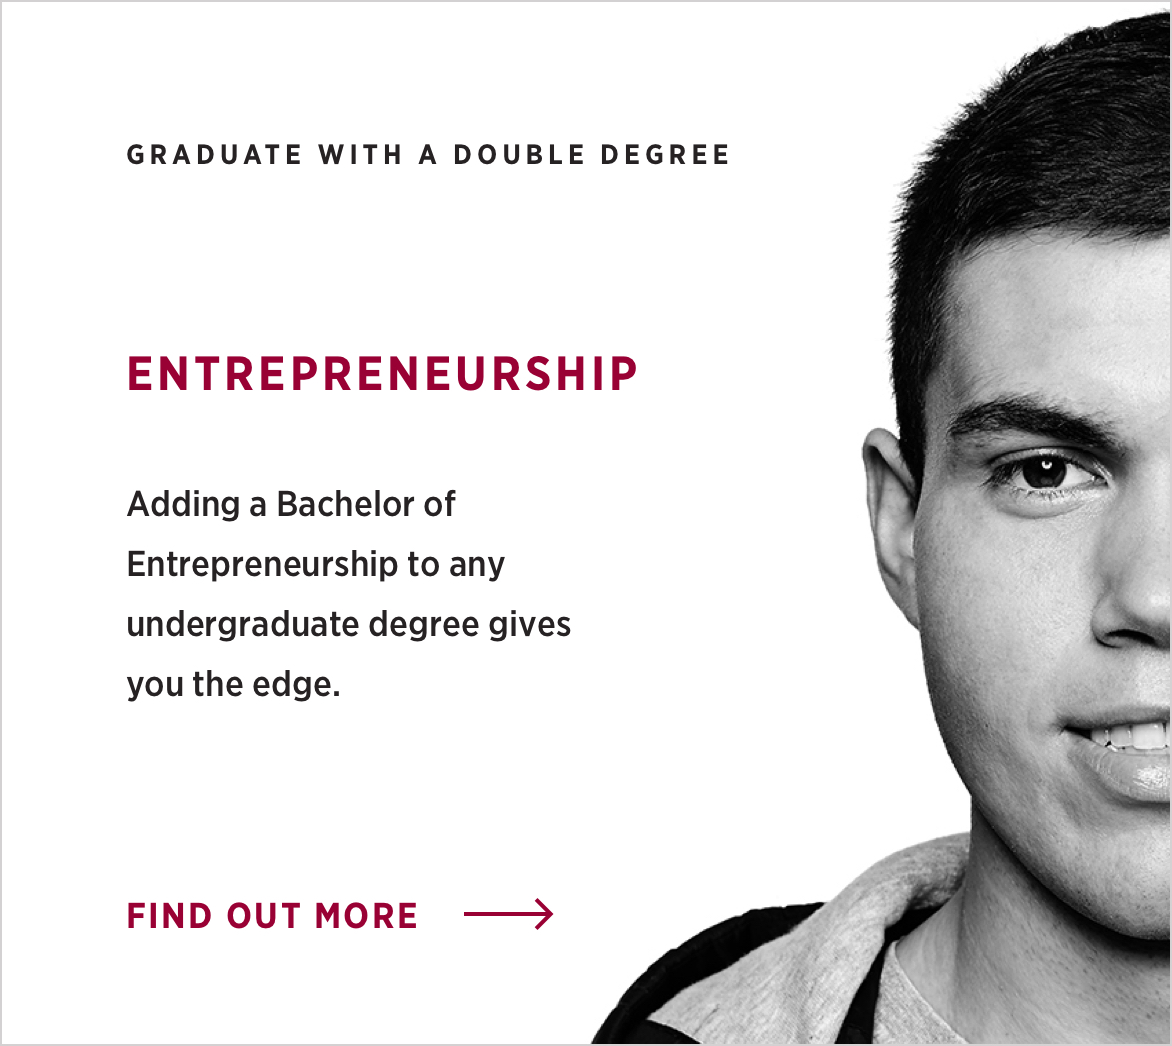 Entreprenurship degree